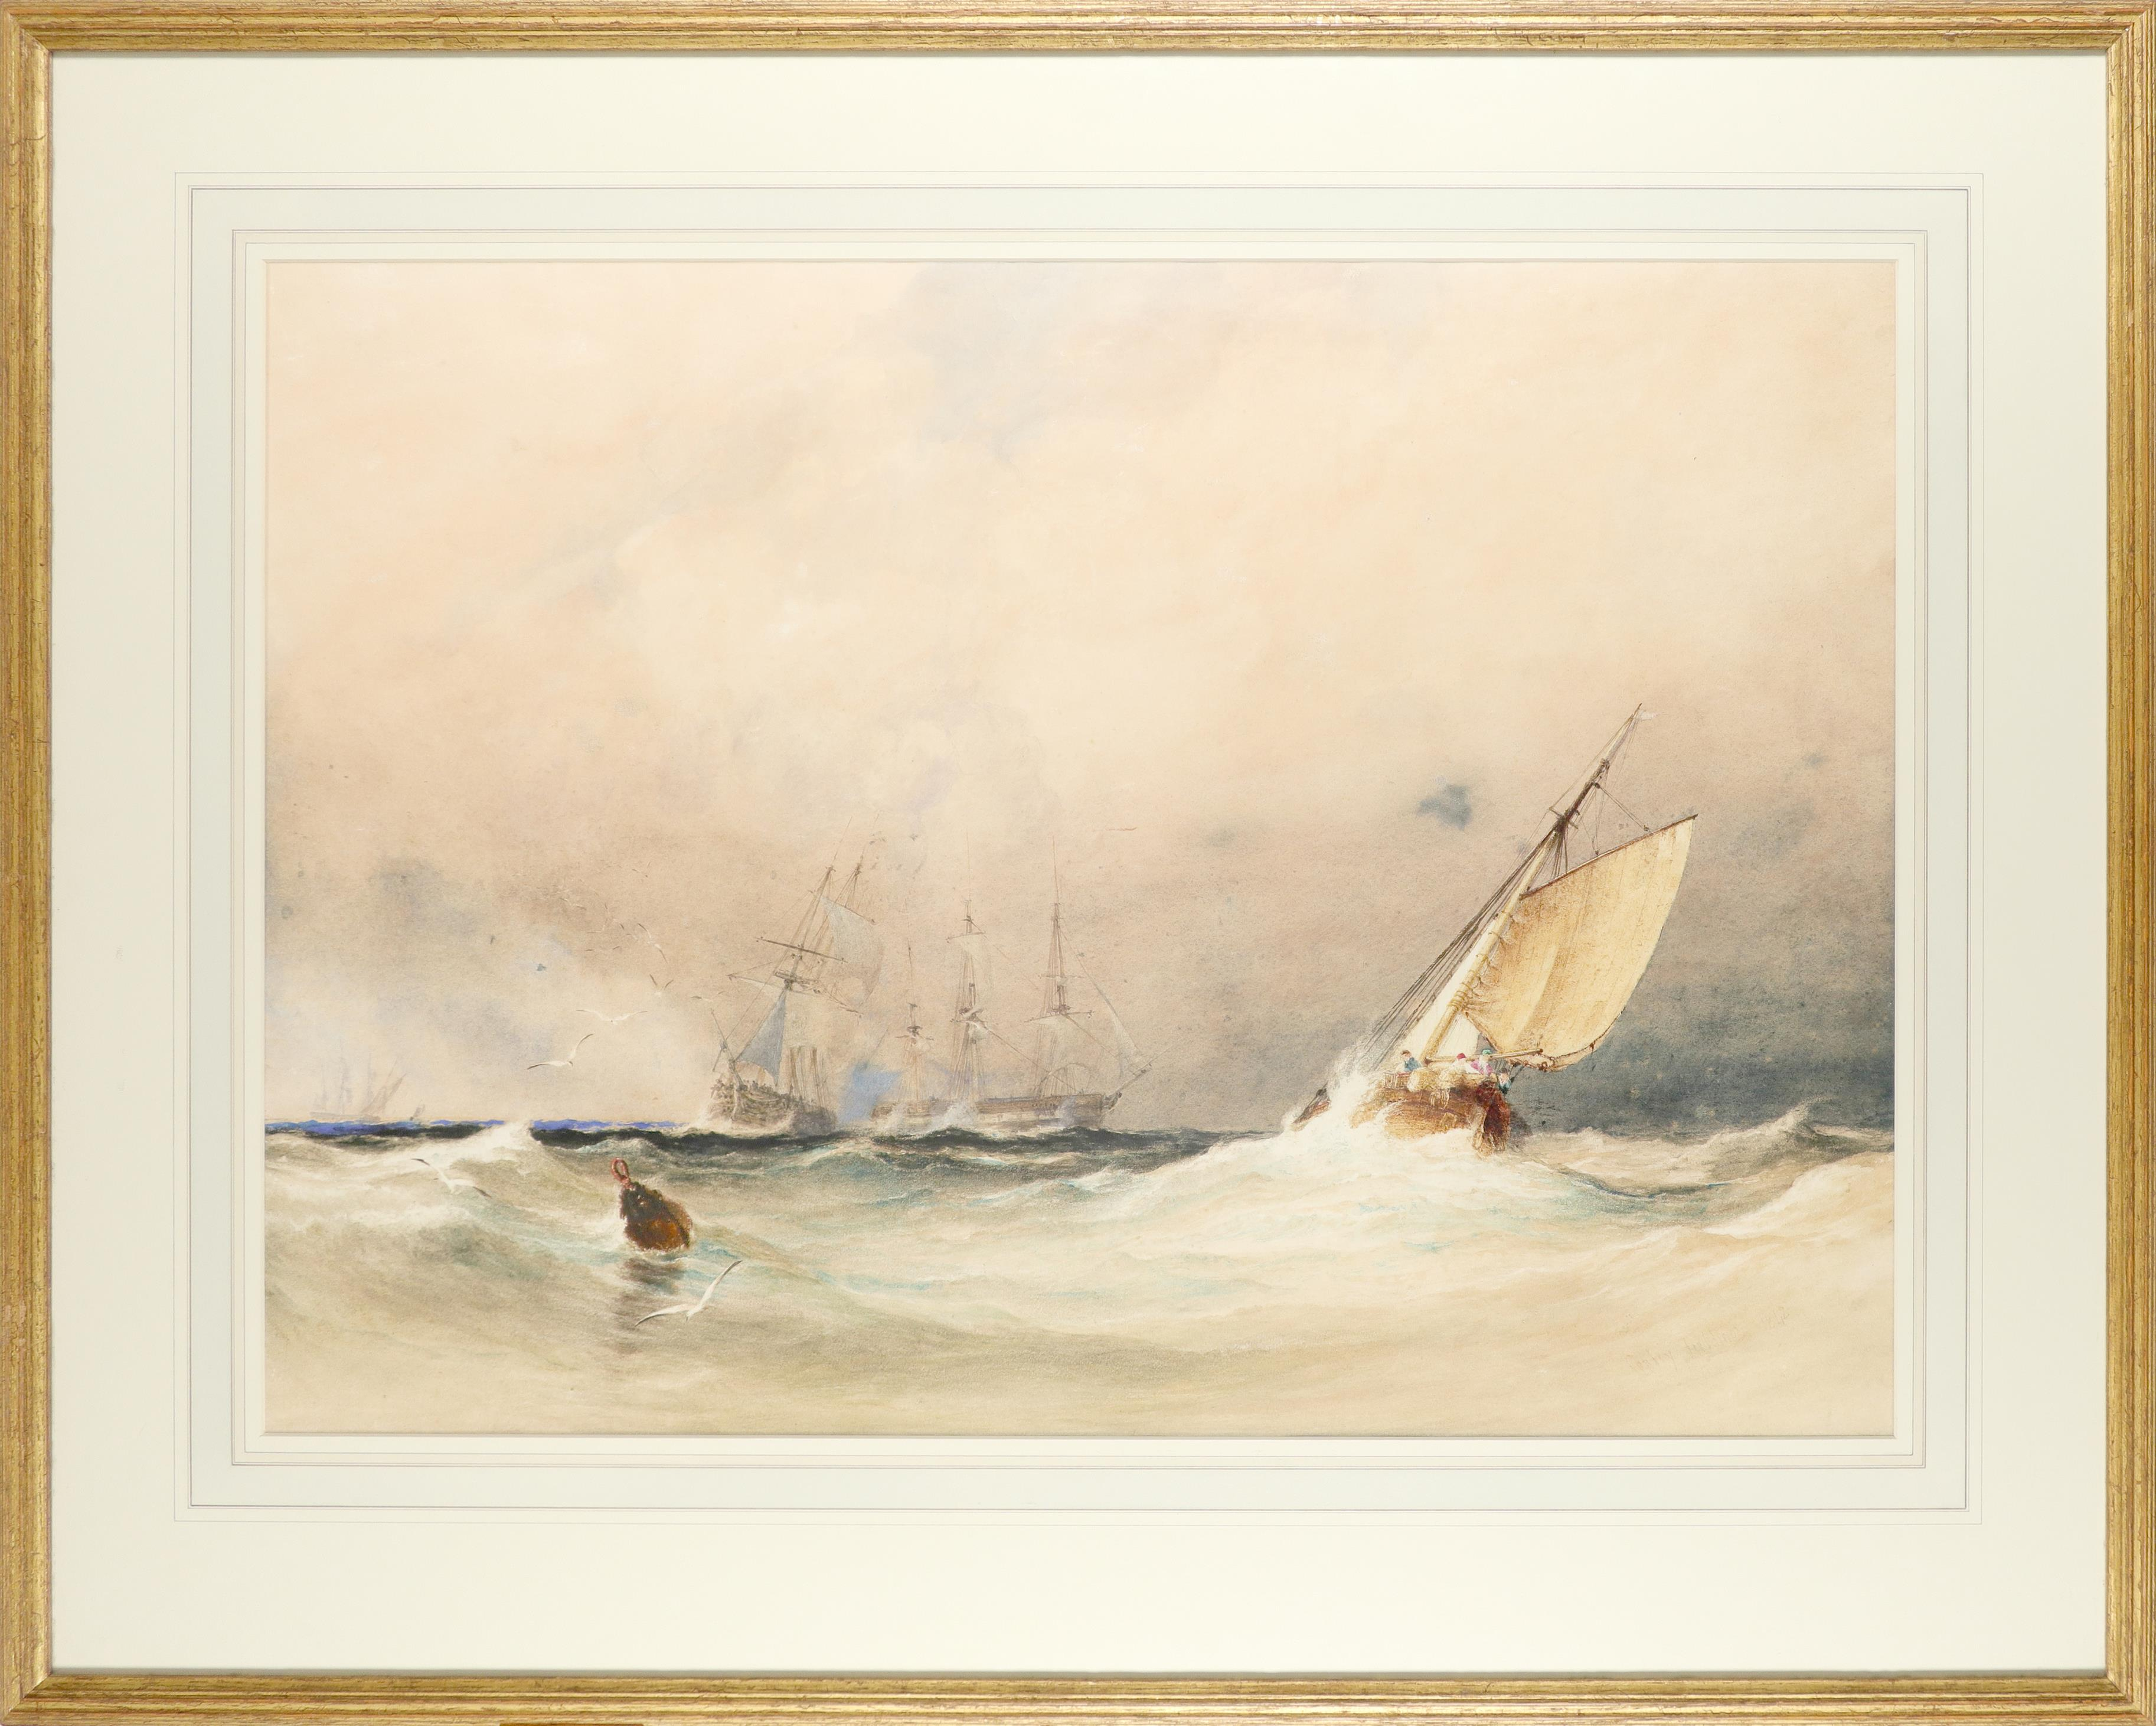 Anthony Vandyke Copley Fielding POWS (1787-1855) Ships in choppy waters Signed and dated Copley - Image 2 of 3